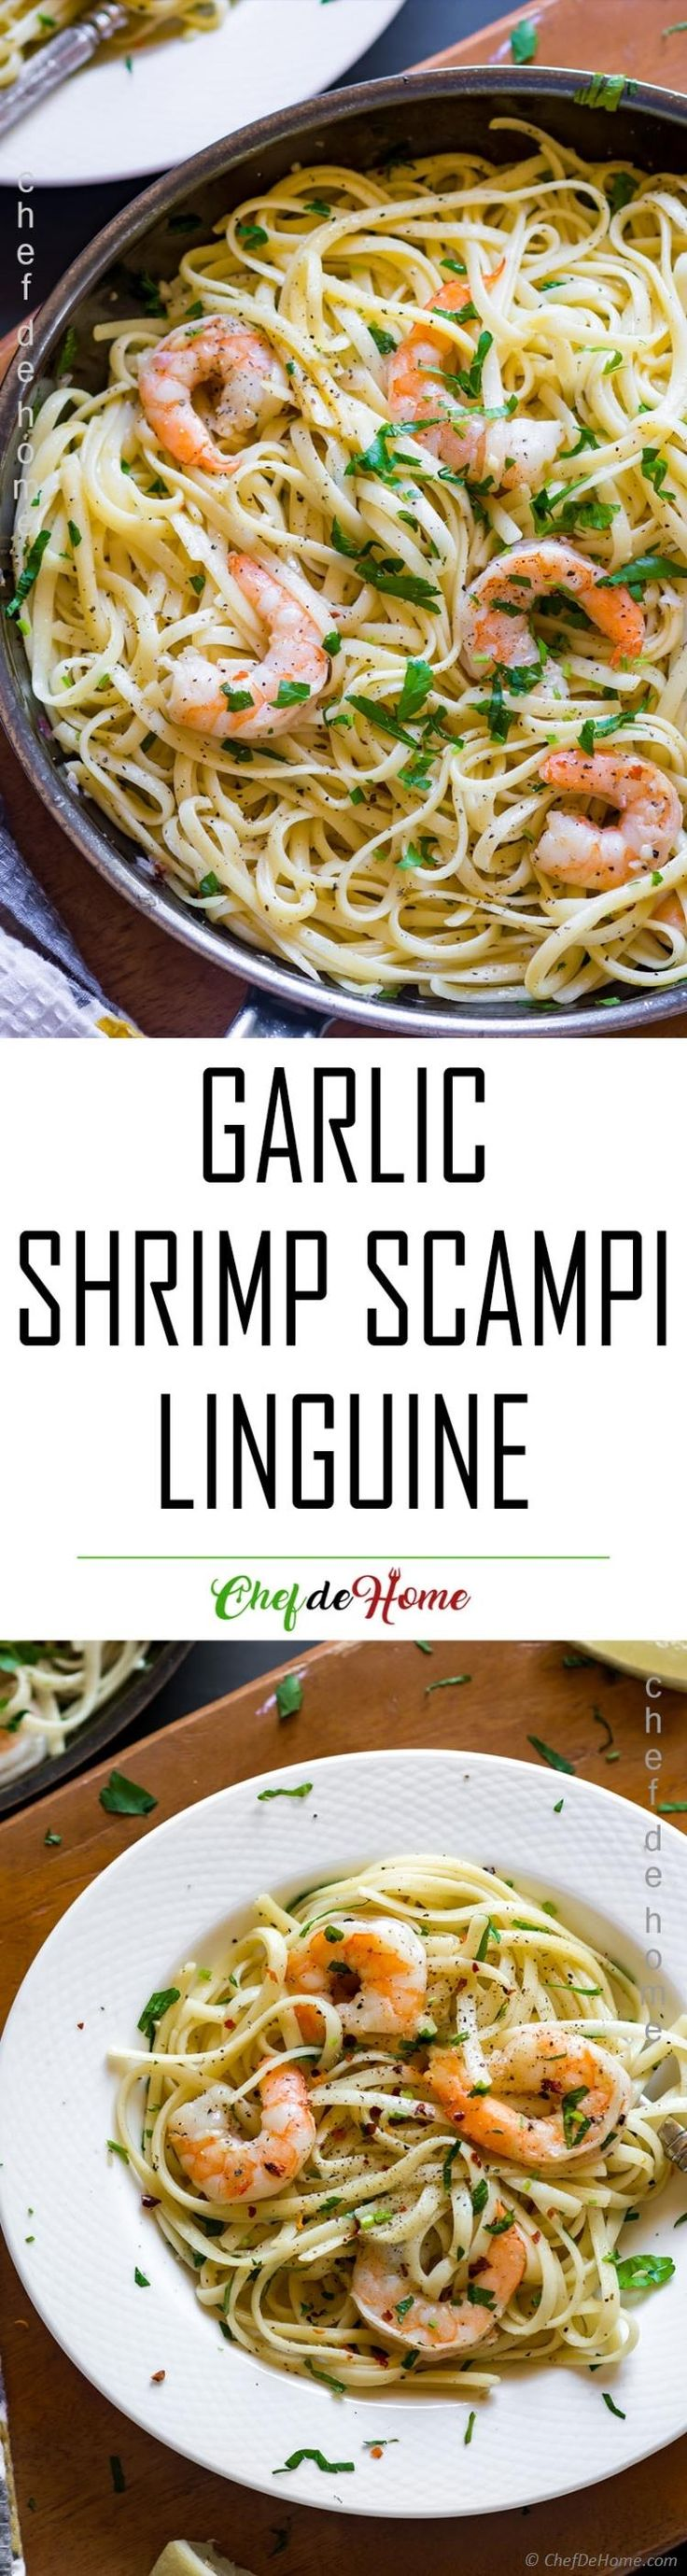 Easy Garlic and Wine Sauce Shrimp Scampi with Pasta